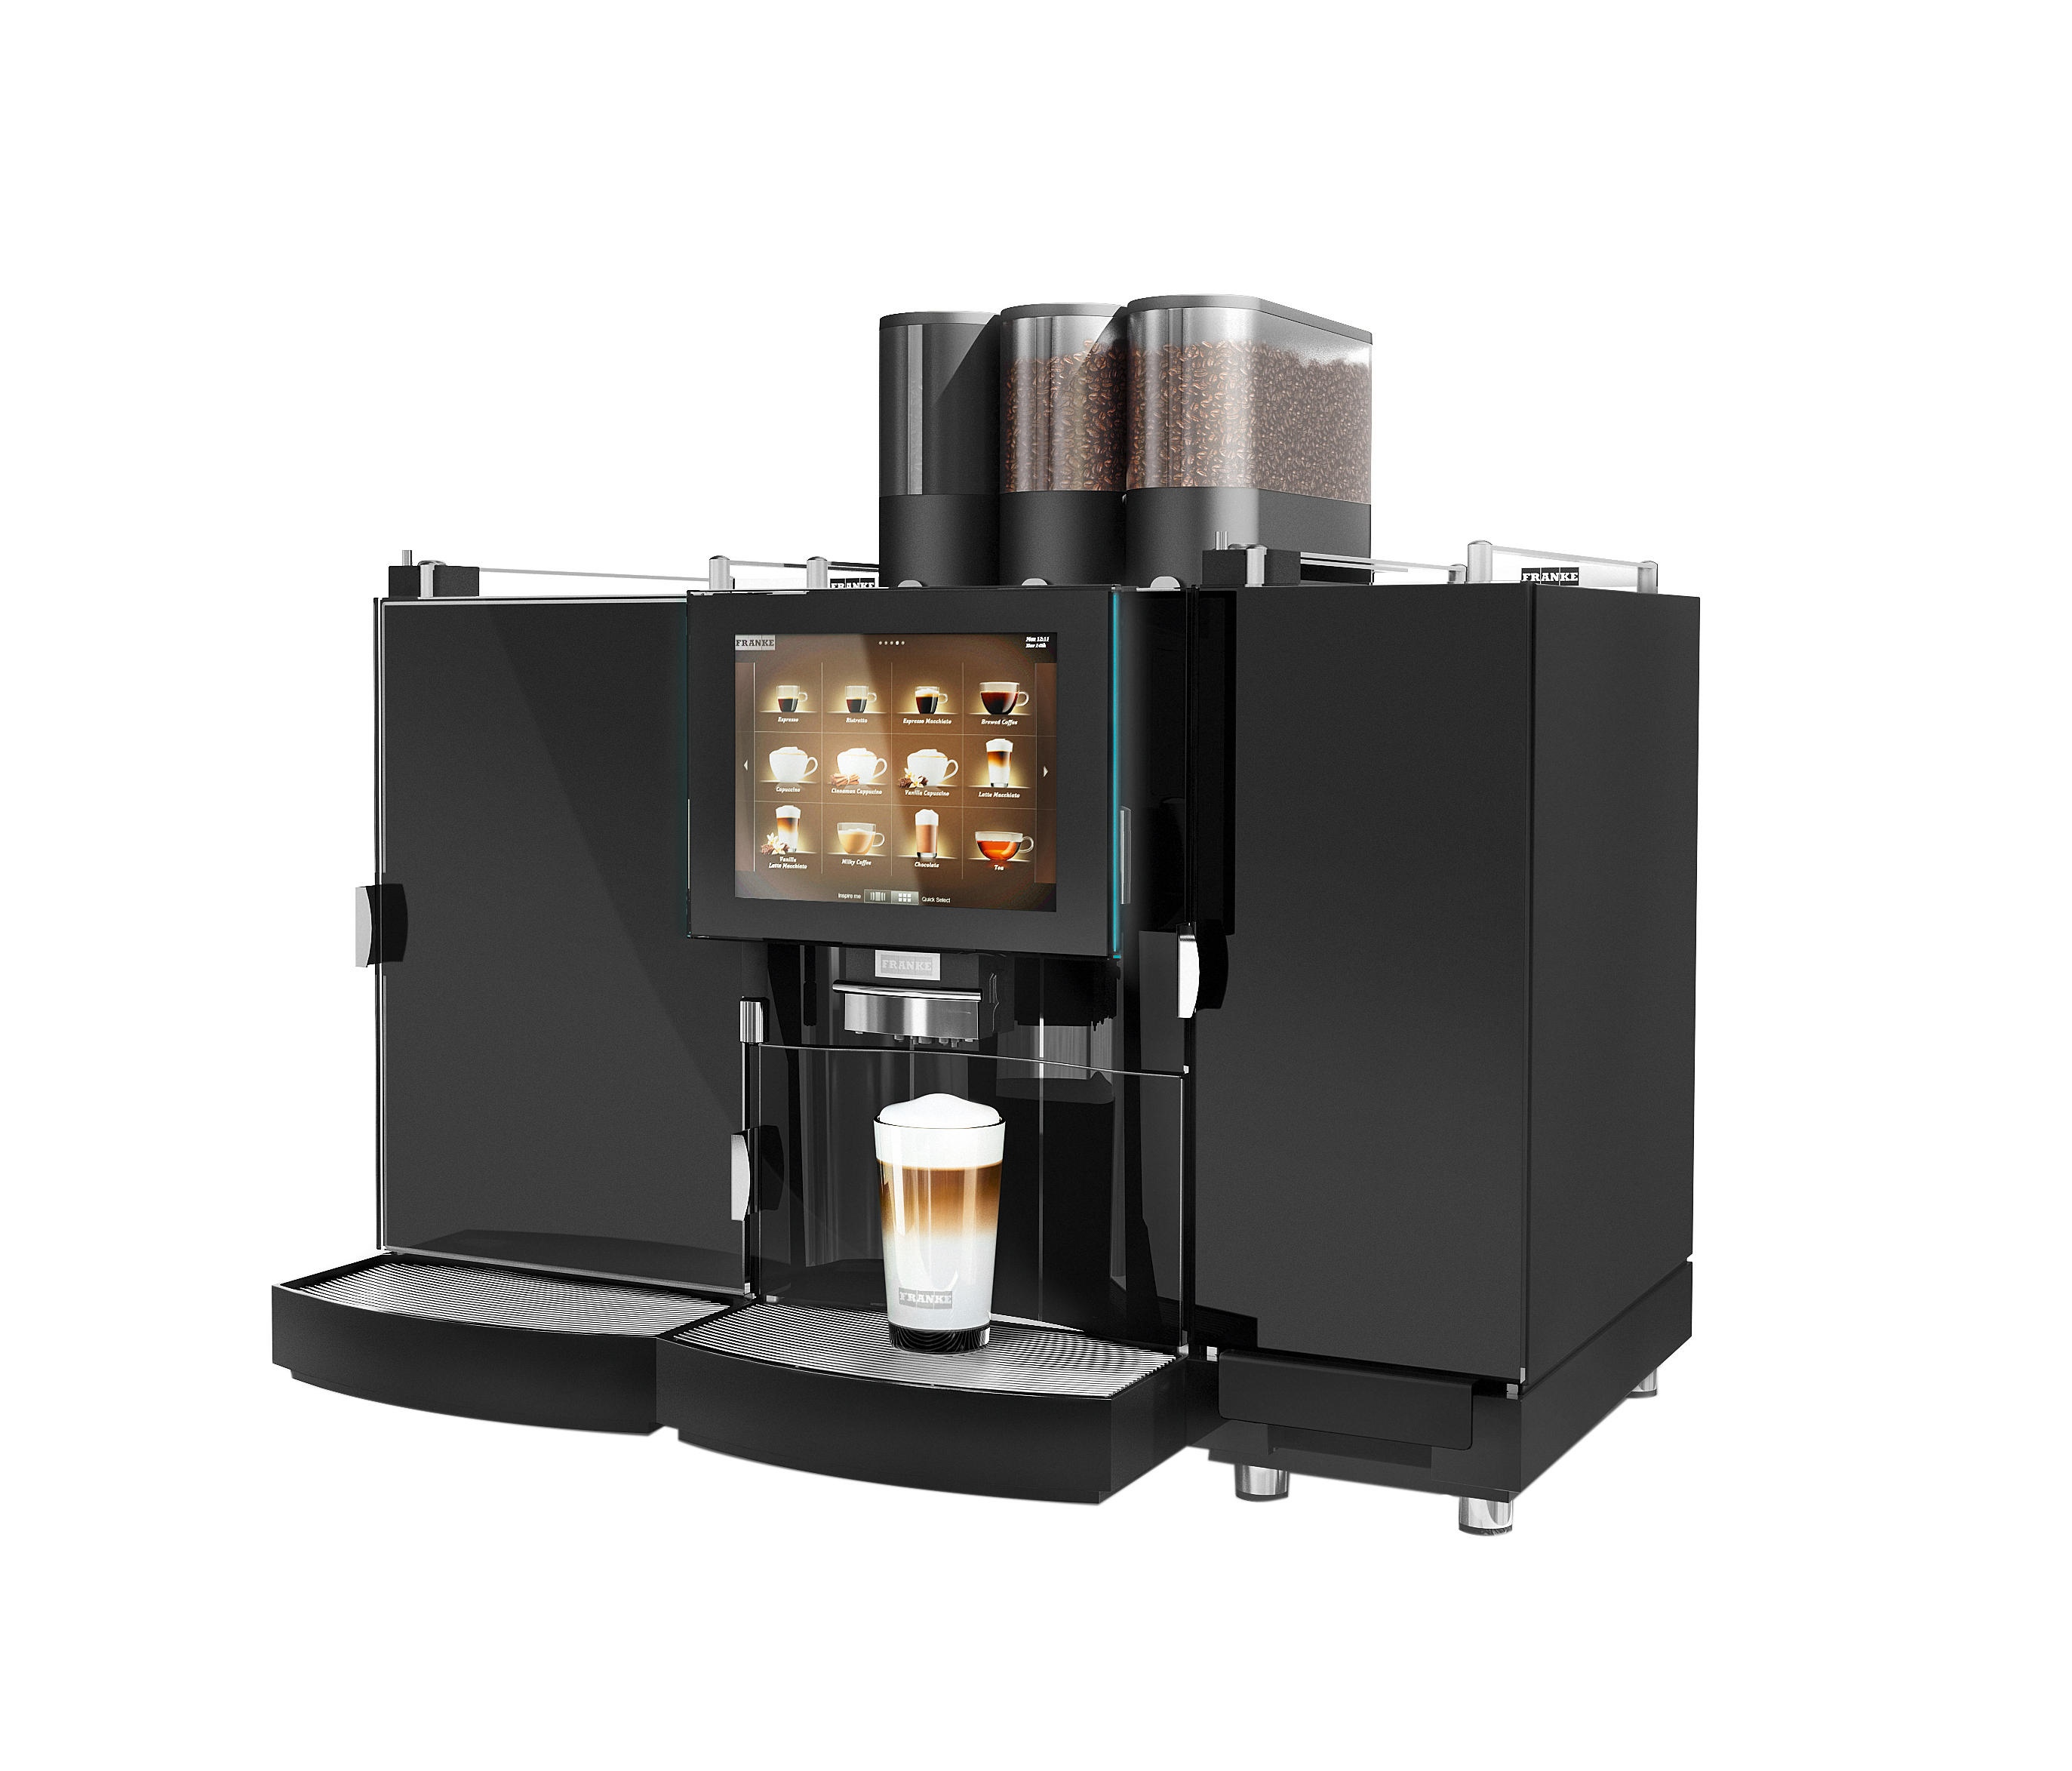 foammaster coffee machines from franke kaffeemaschinen ag architonic. Black Bedroom Furniture Sets. Home Design Ideas